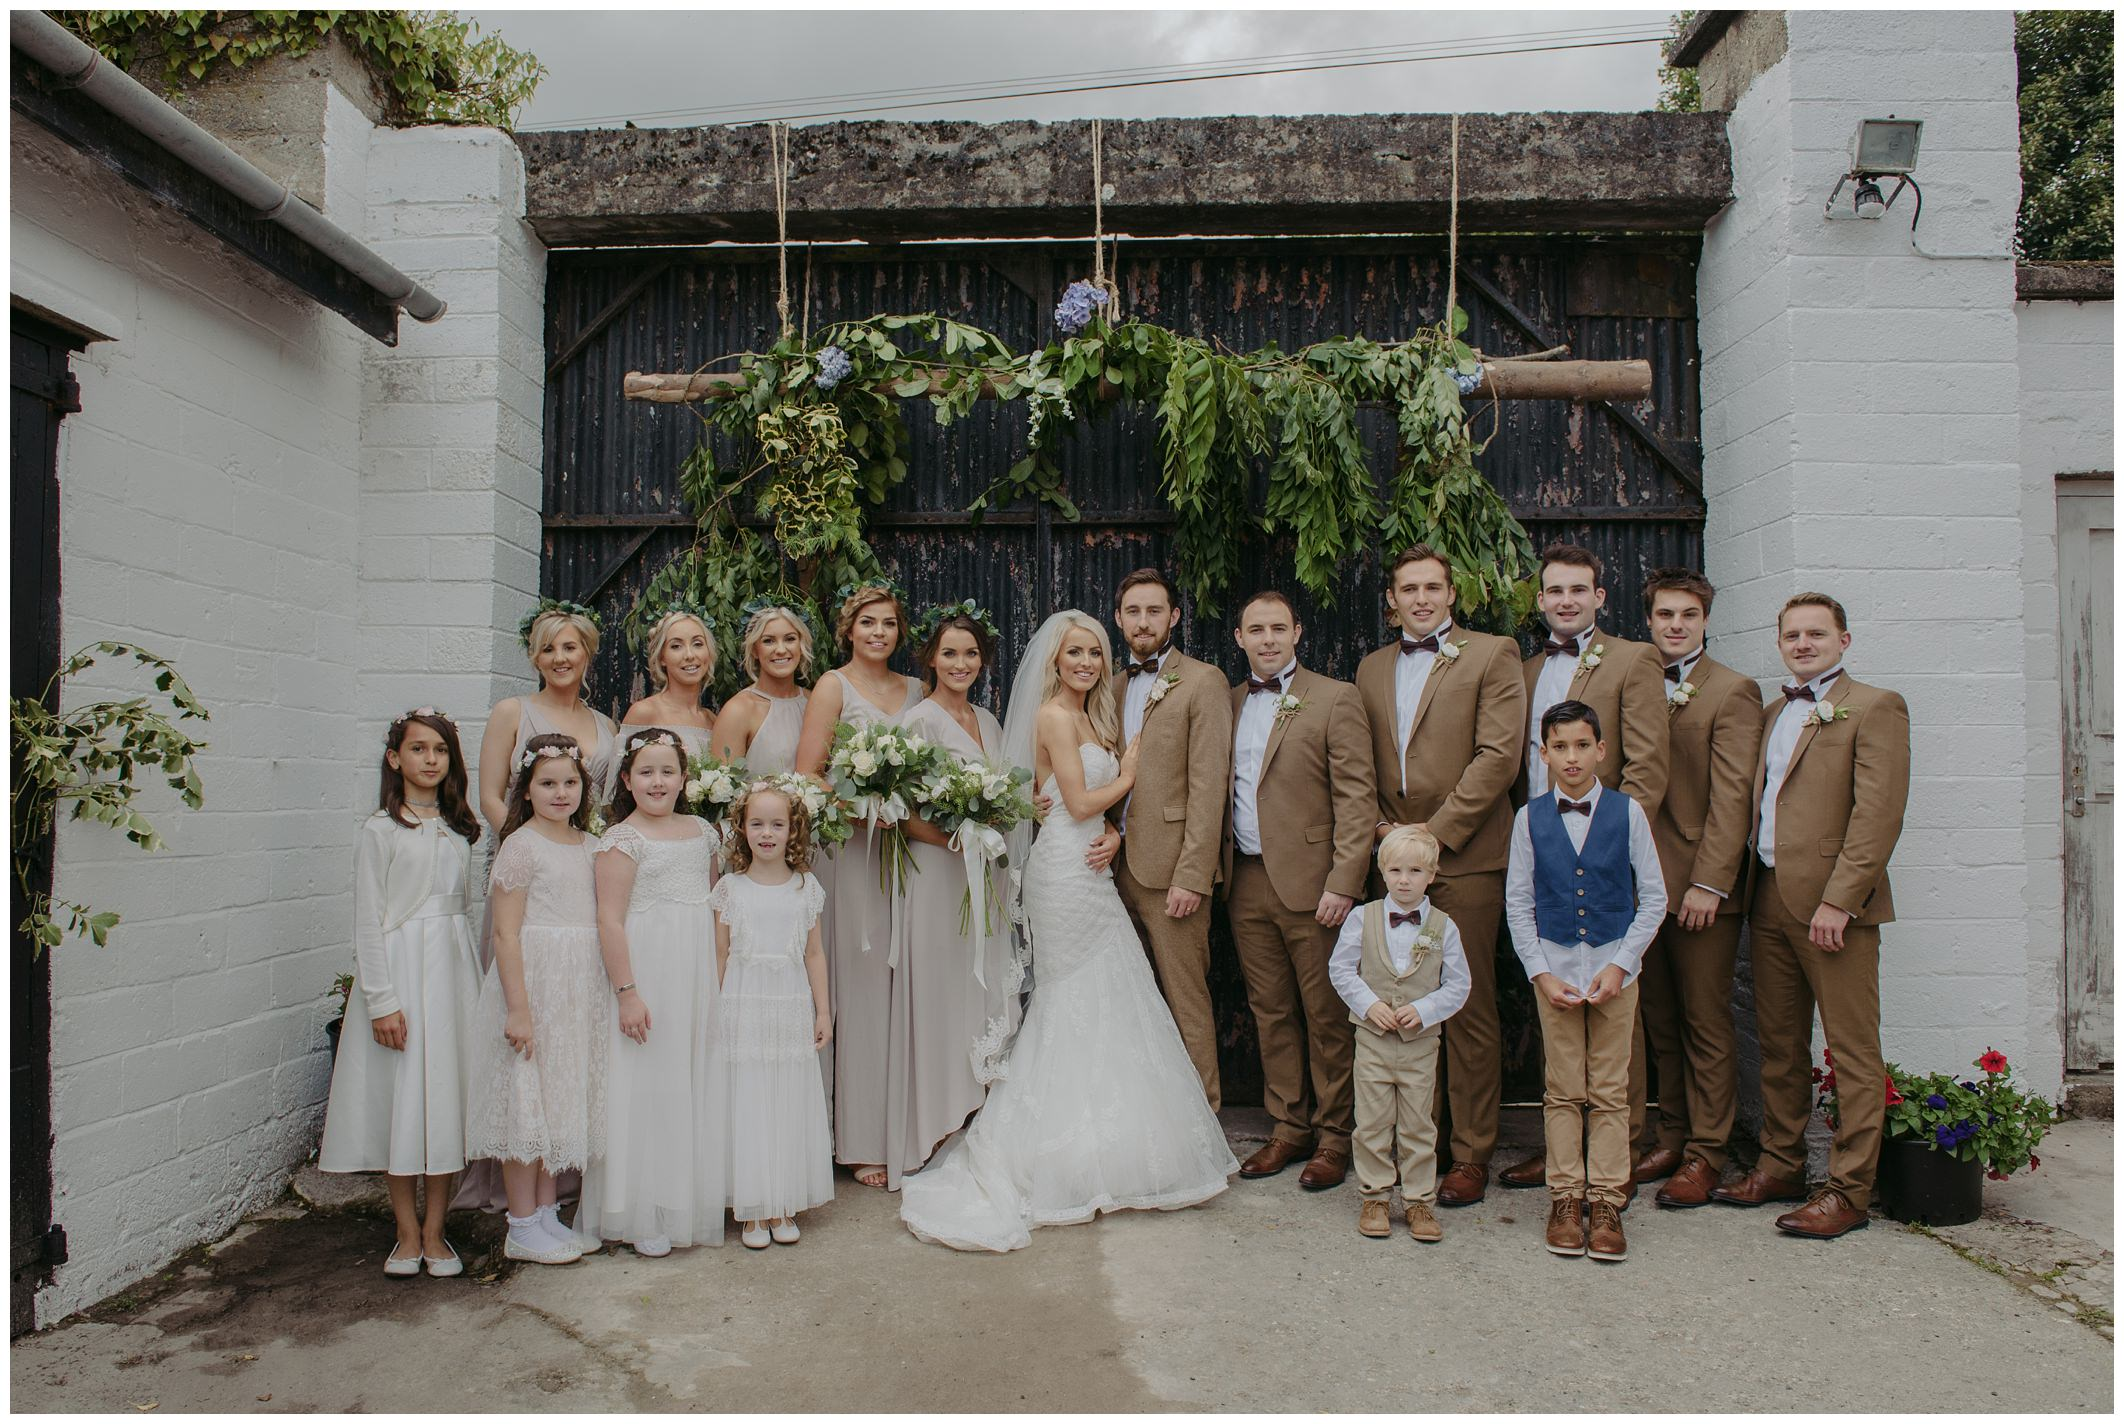 tara_neil_the_mill_alternative_quirky_wedding_jude_browne_photography_0118.jpg